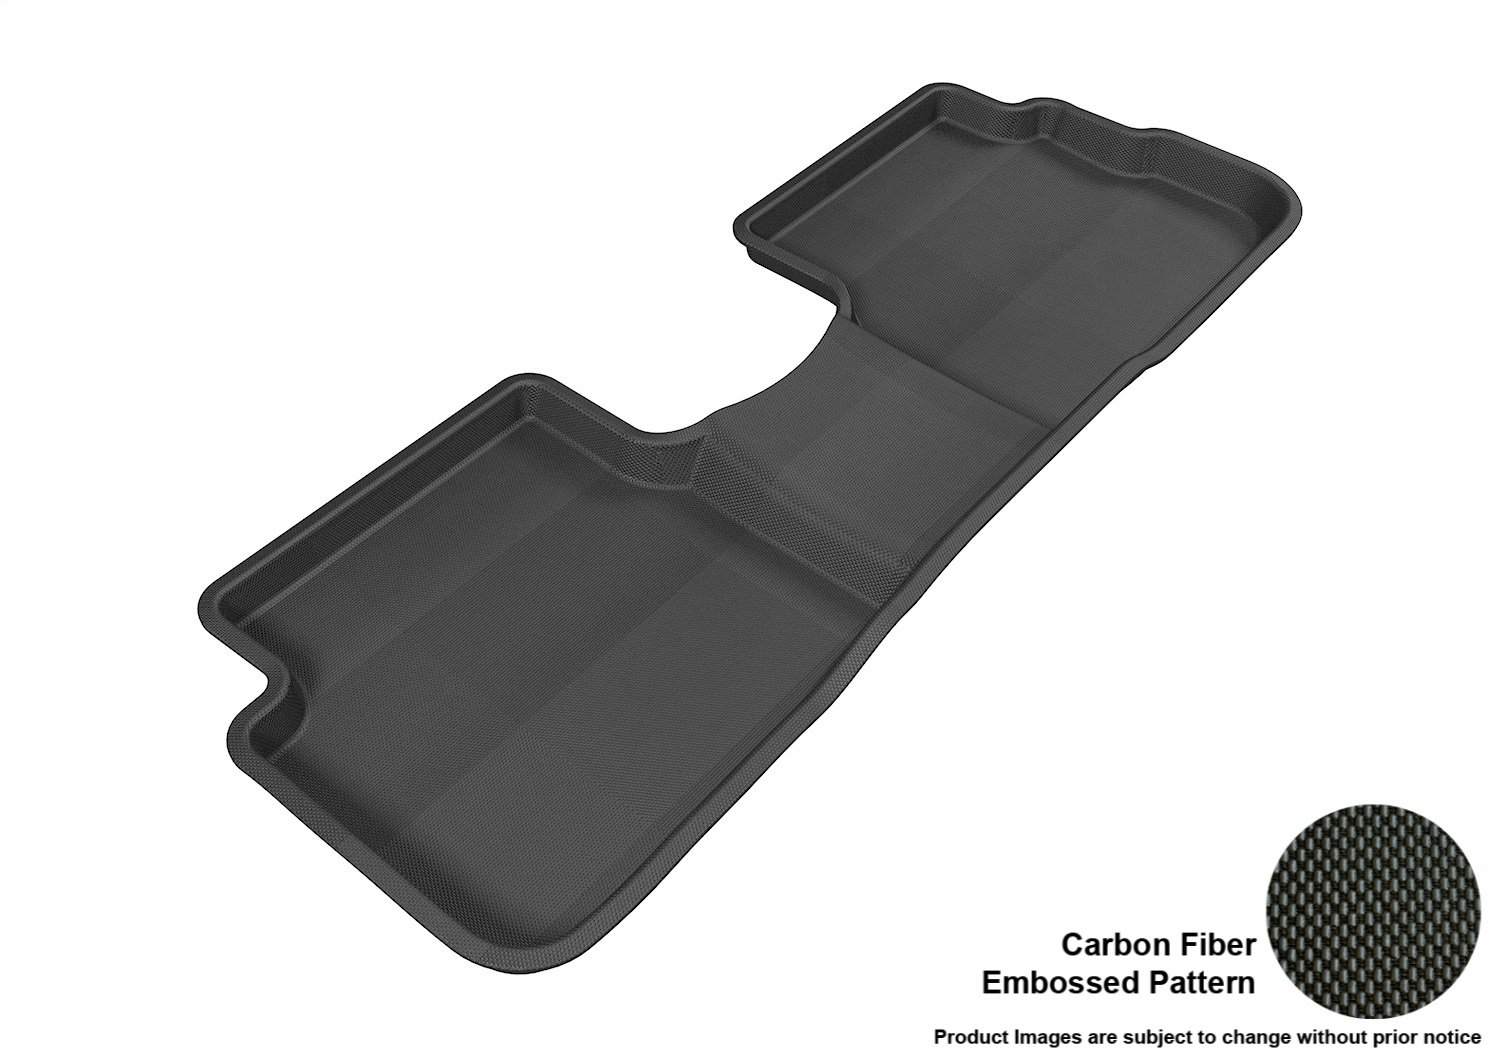 3D MAXpider Second Row Custom Fit All-Weather Floor Mat for Select Pontiac Vibe Models Tan L1PA00121502 Kagu Rubber